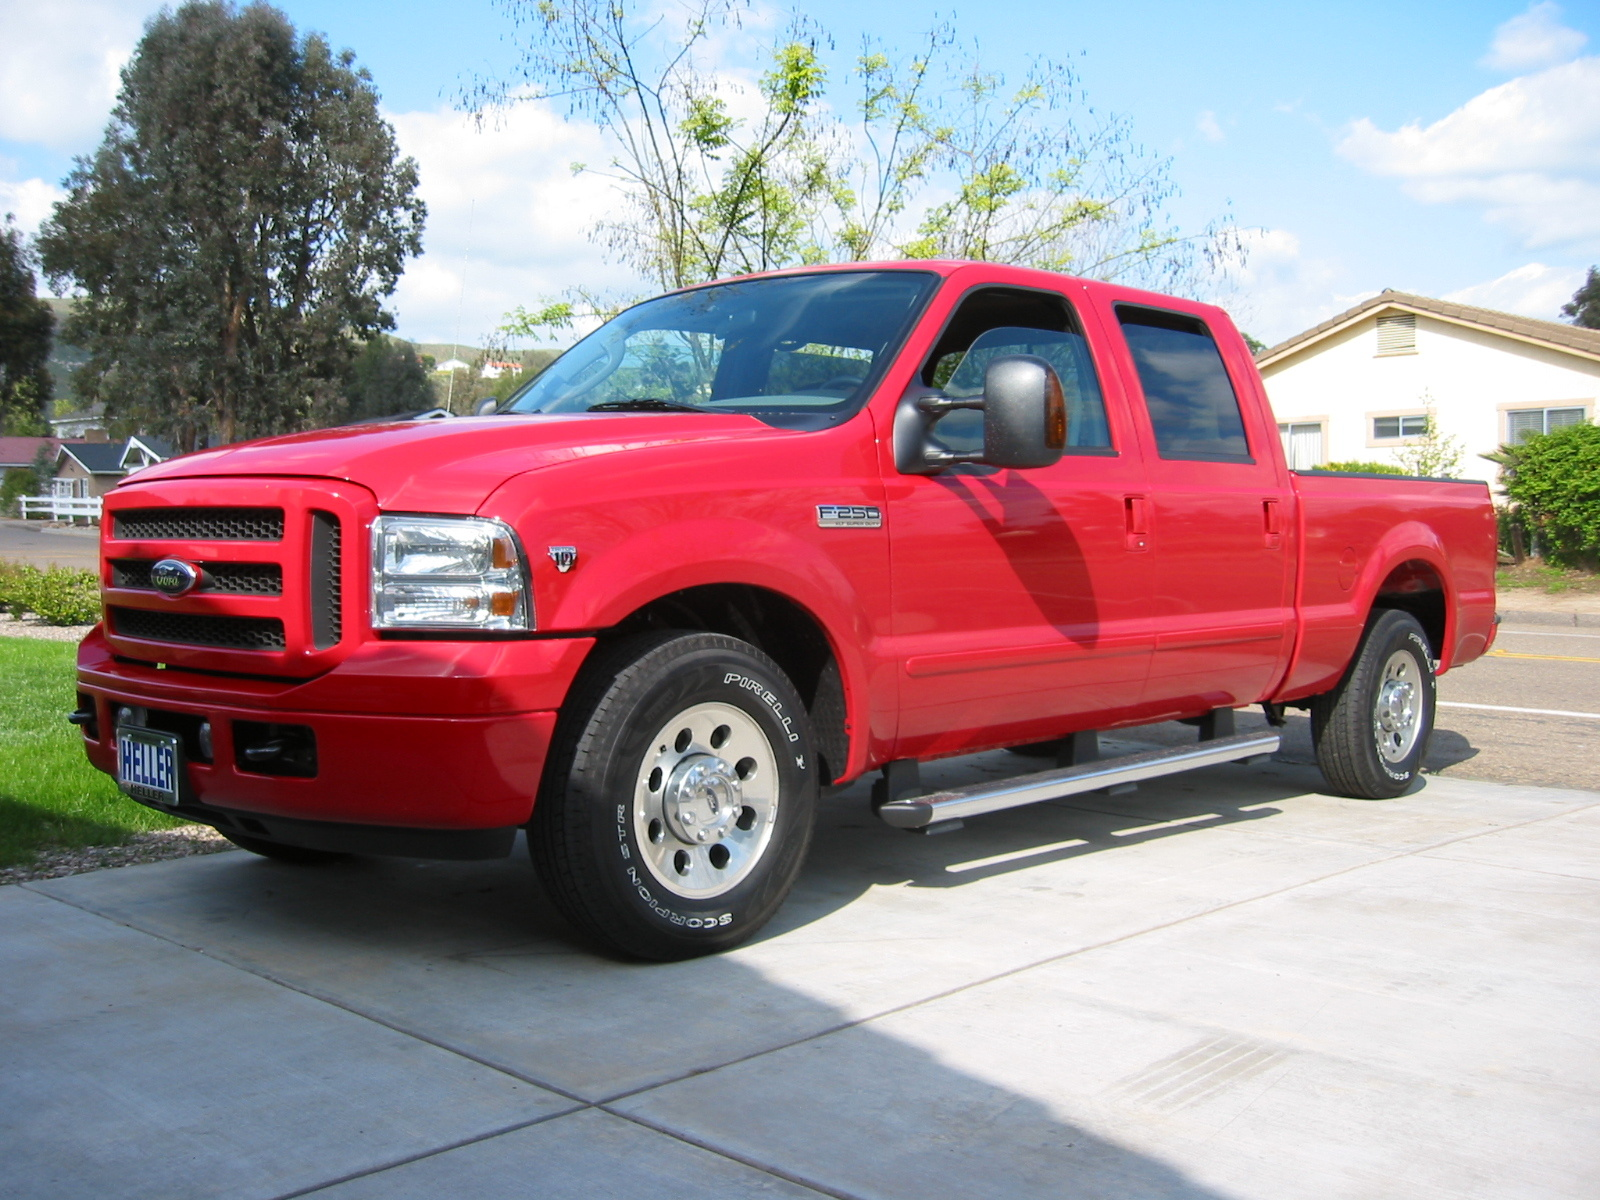 Picture of 2005 ford f 250 super duty xlt crew cab lb exterior